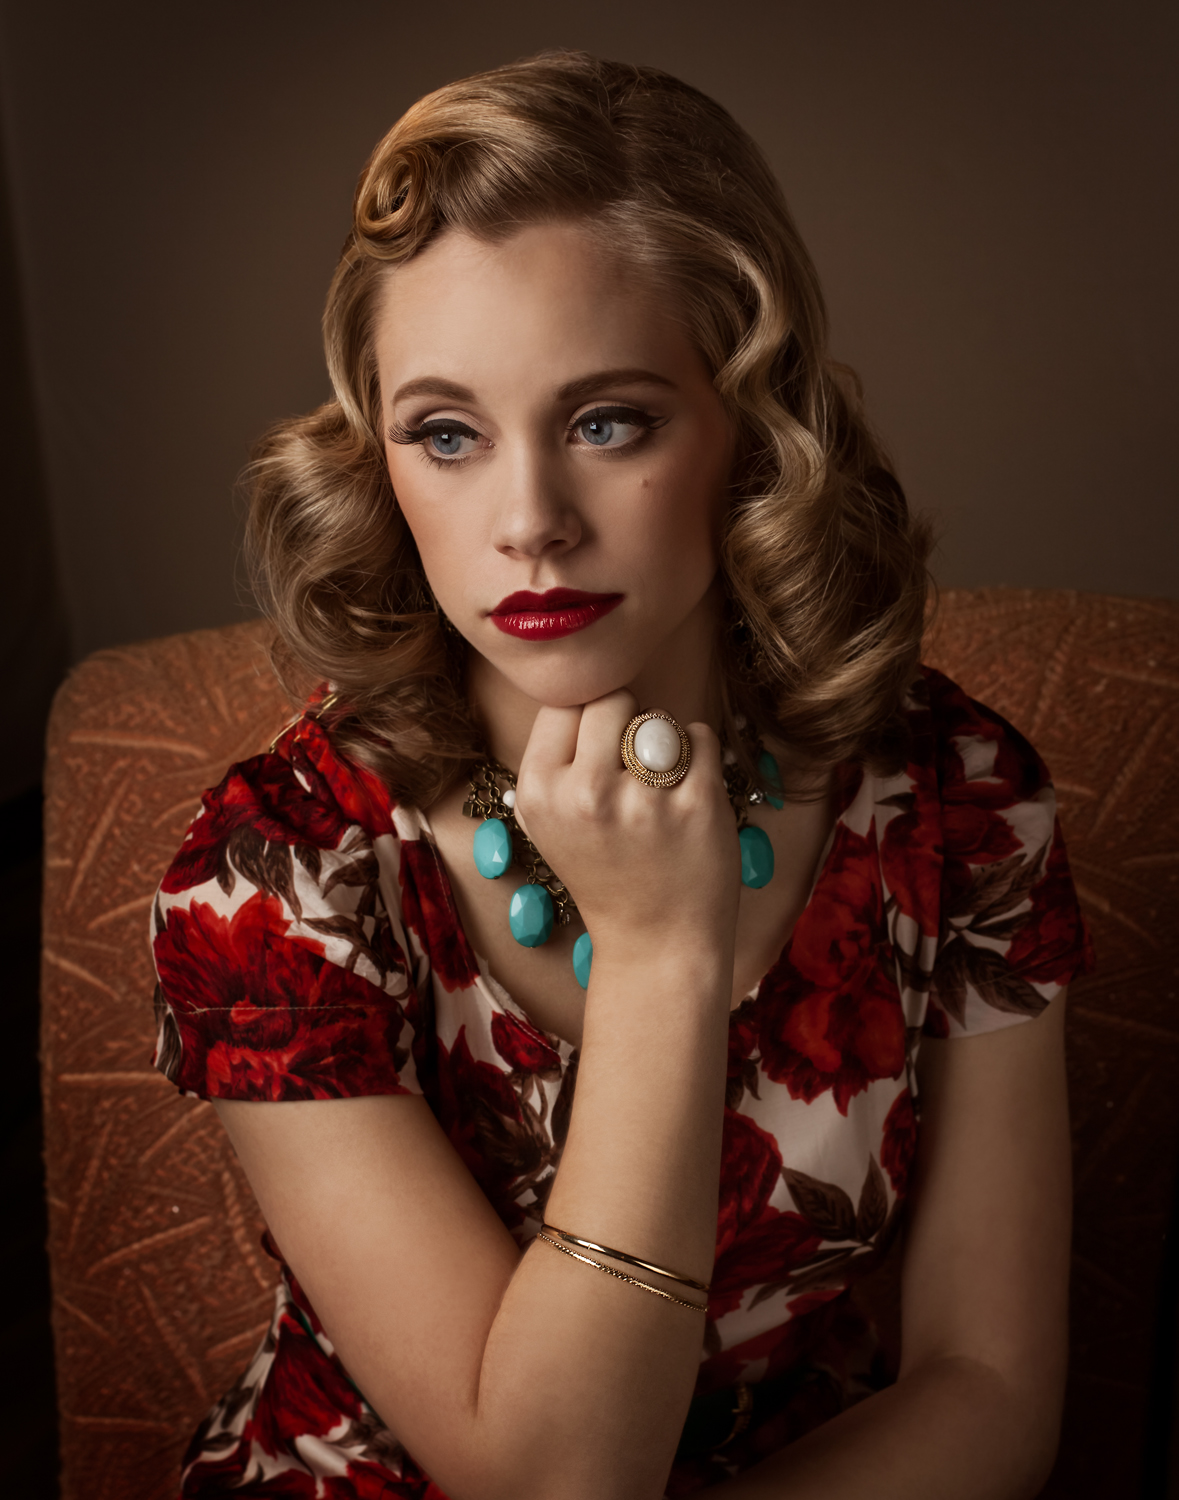 Hair and make up by steph 1960 39 s housewife for Classic 50s housewife